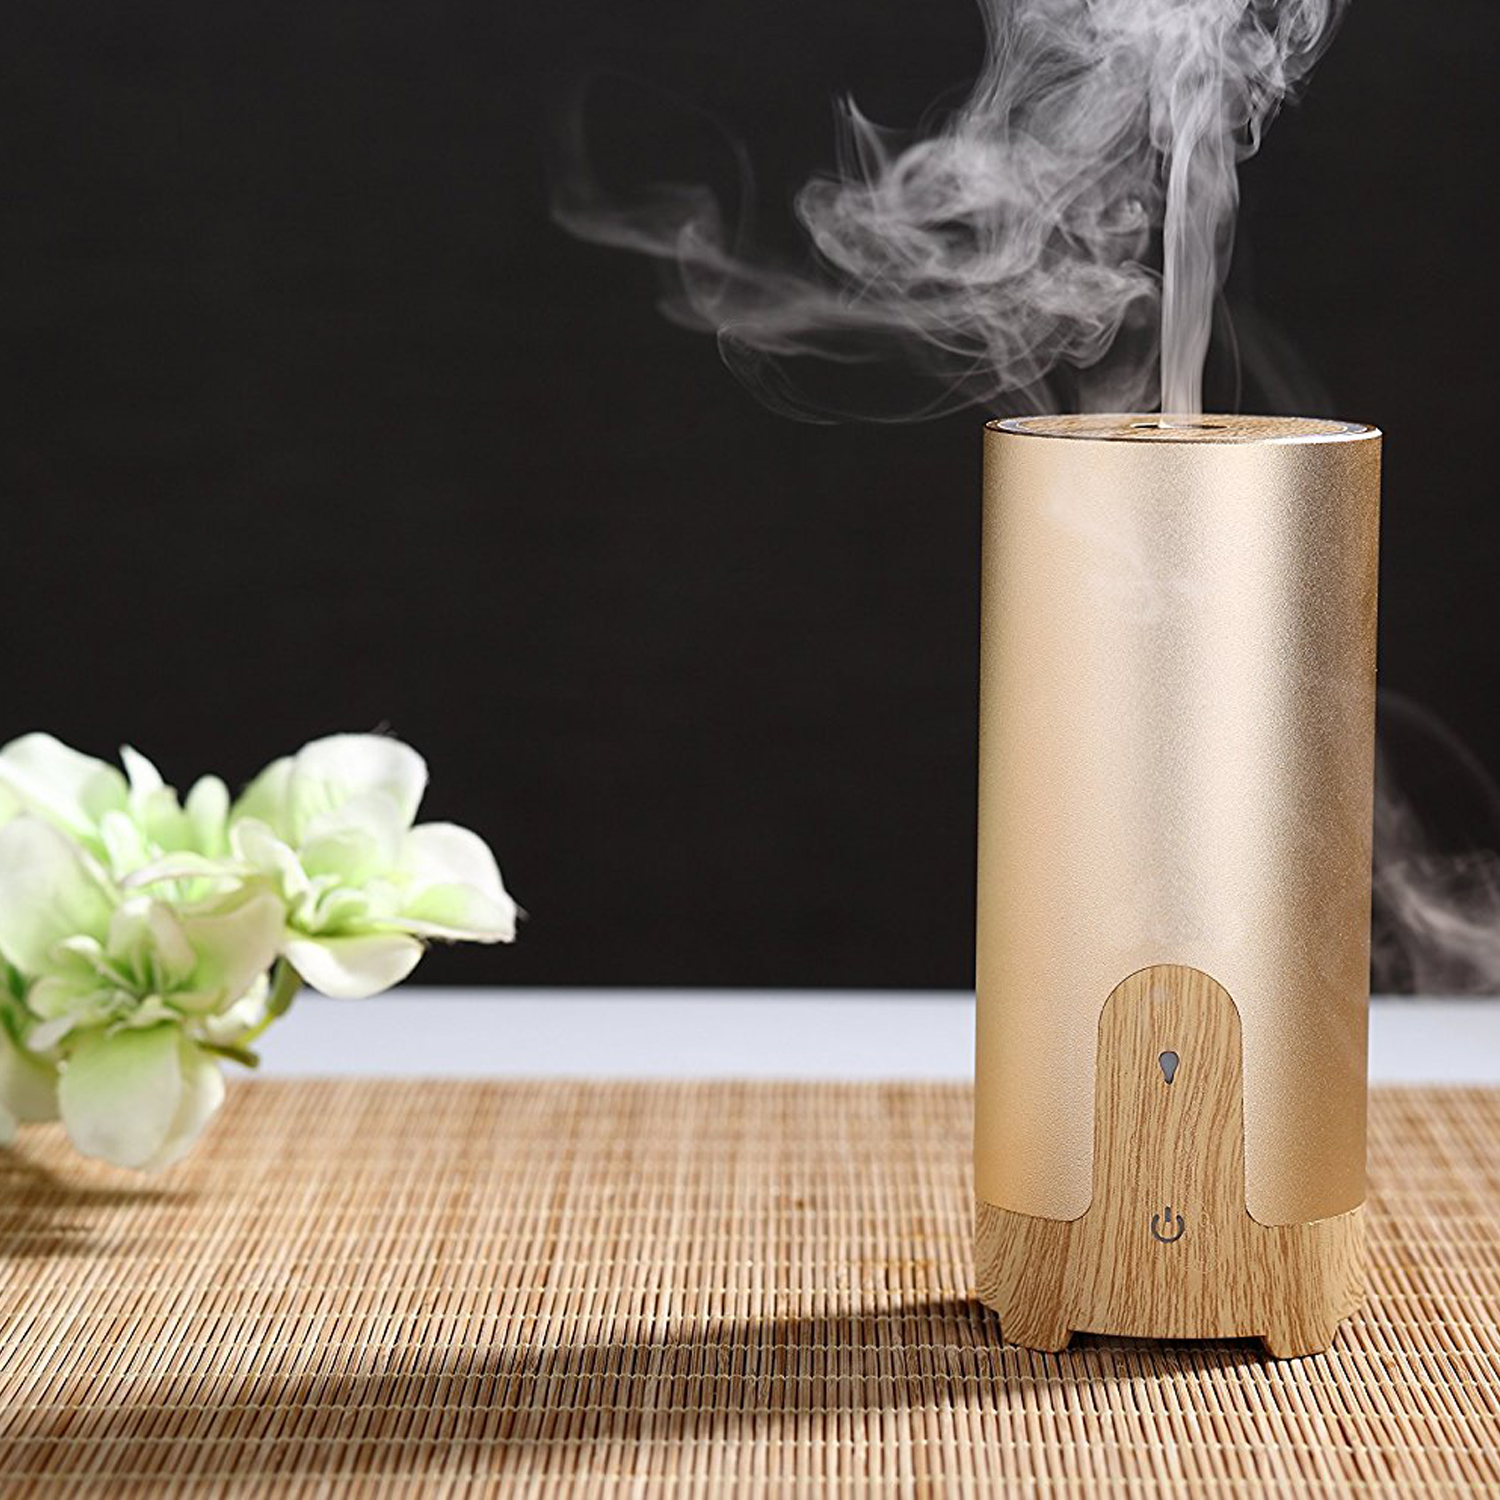 USB Car Essential Oil Fragrance Air Freshener Ultrasonic Aroma Diffuser Car Cup Design Portable Humidifier flying saucer style car vehicle aromatic fragrance air freshener ocean flavor